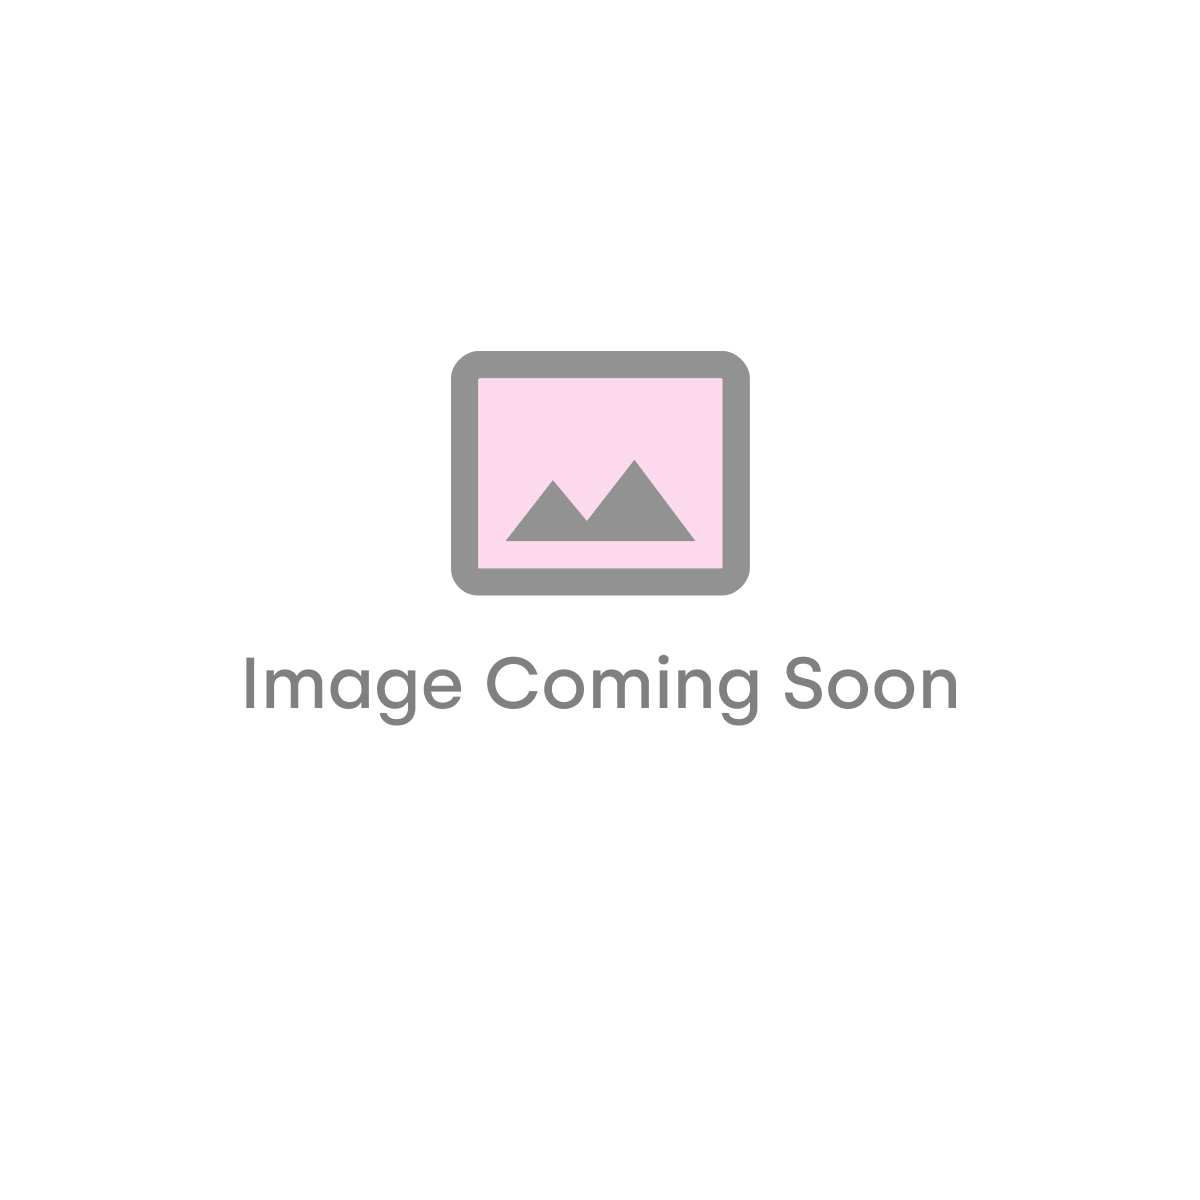 Shelbourne 800mm Mirrored Cabinet - Matt Grey (19491)